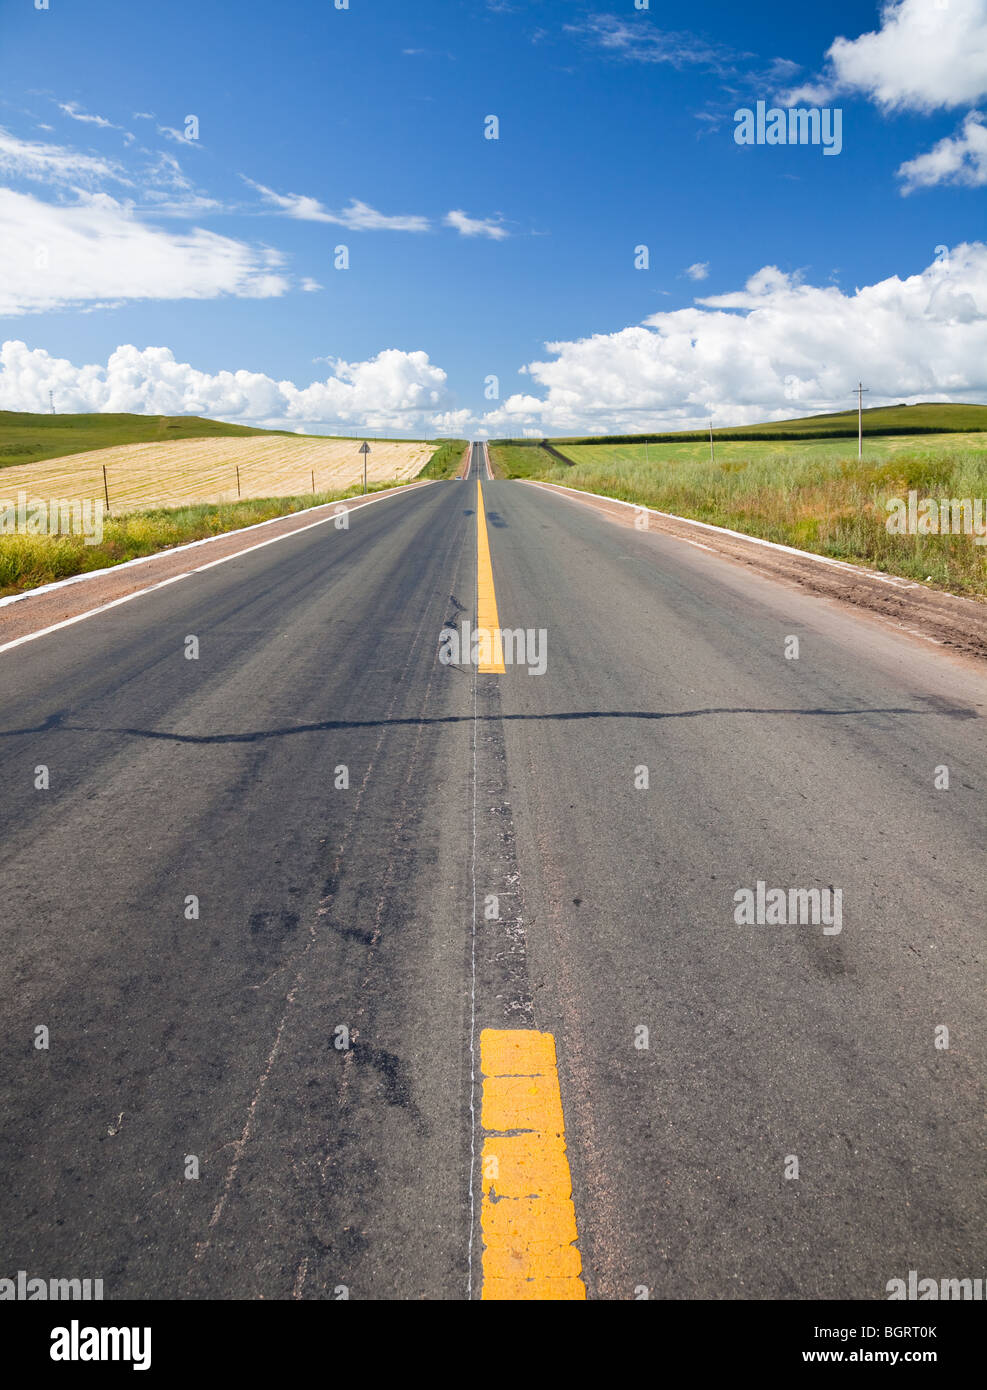 asphalt country road - Stock Image